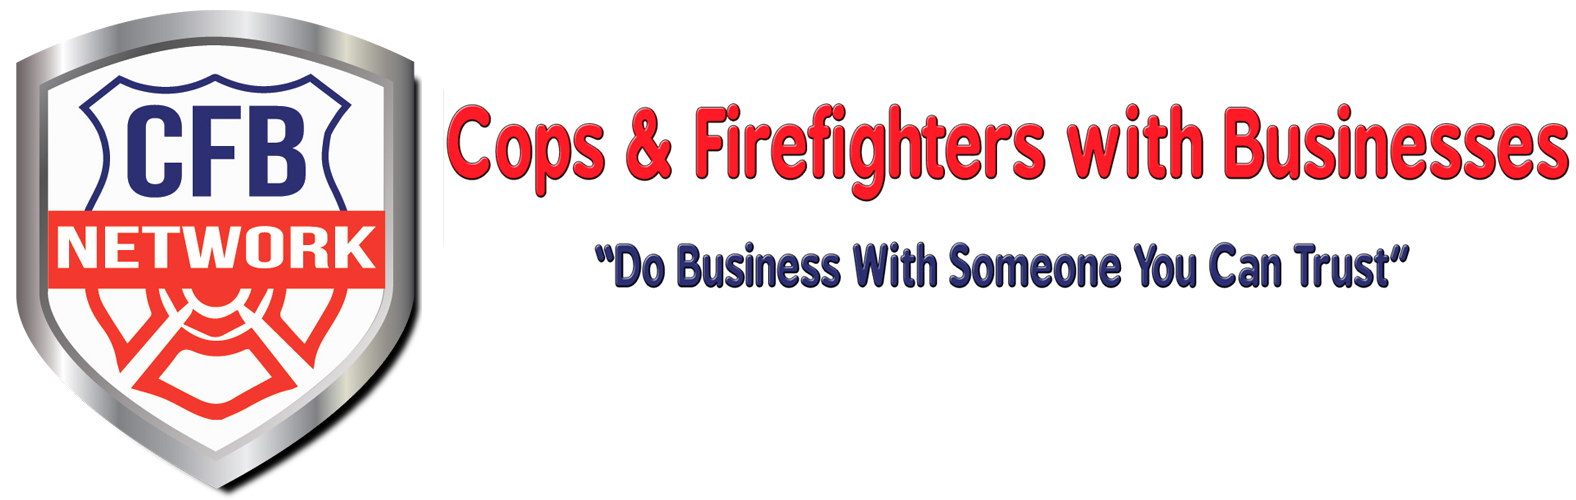 Cops & Firefighters With Businesses CFBNetwork.com